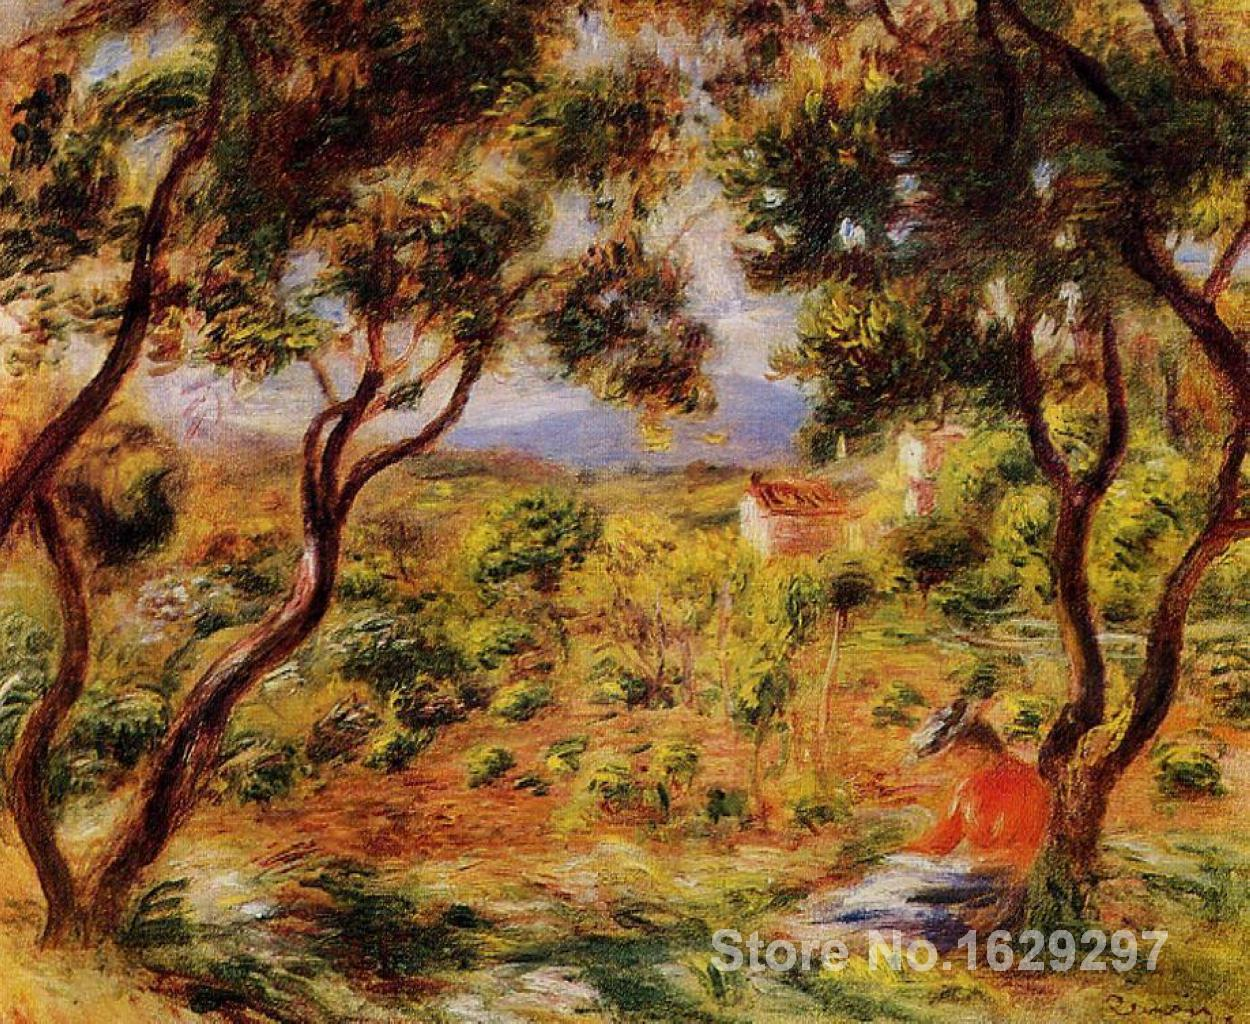 art canvas reproductions The Vineyards of Cagnes-Pierre Auguste Renoir Handmade oil painting High qualityart canvas reproductions The Vineyards of Cagnes-Pierre Auguste Renoir Handmade oil painting High quality